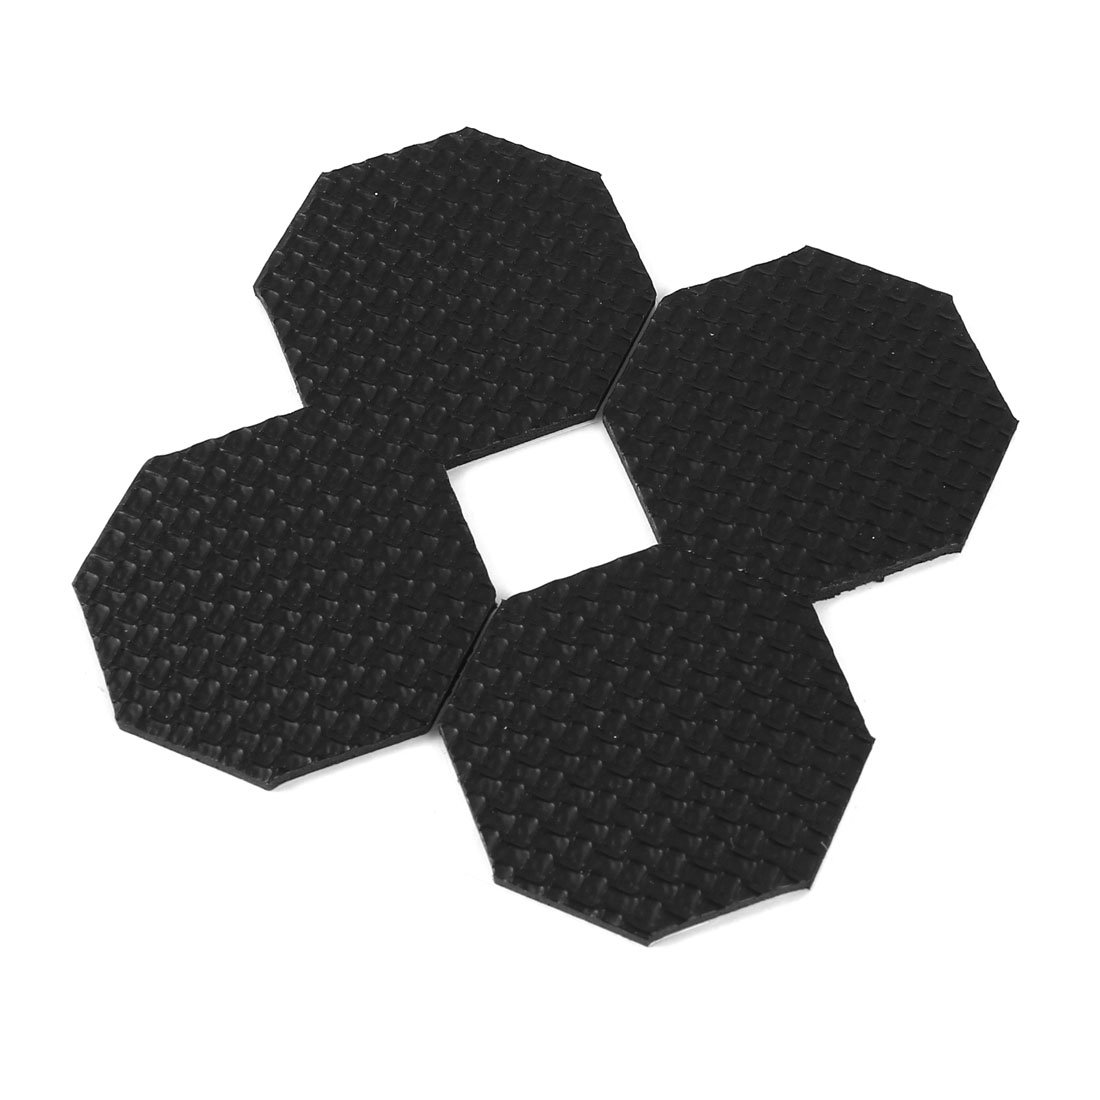 uxcell 4 Pcs Foam Anti Skid Furniture Self Adhesive Pad Protector 45mm Length US-SA-AJD-46075